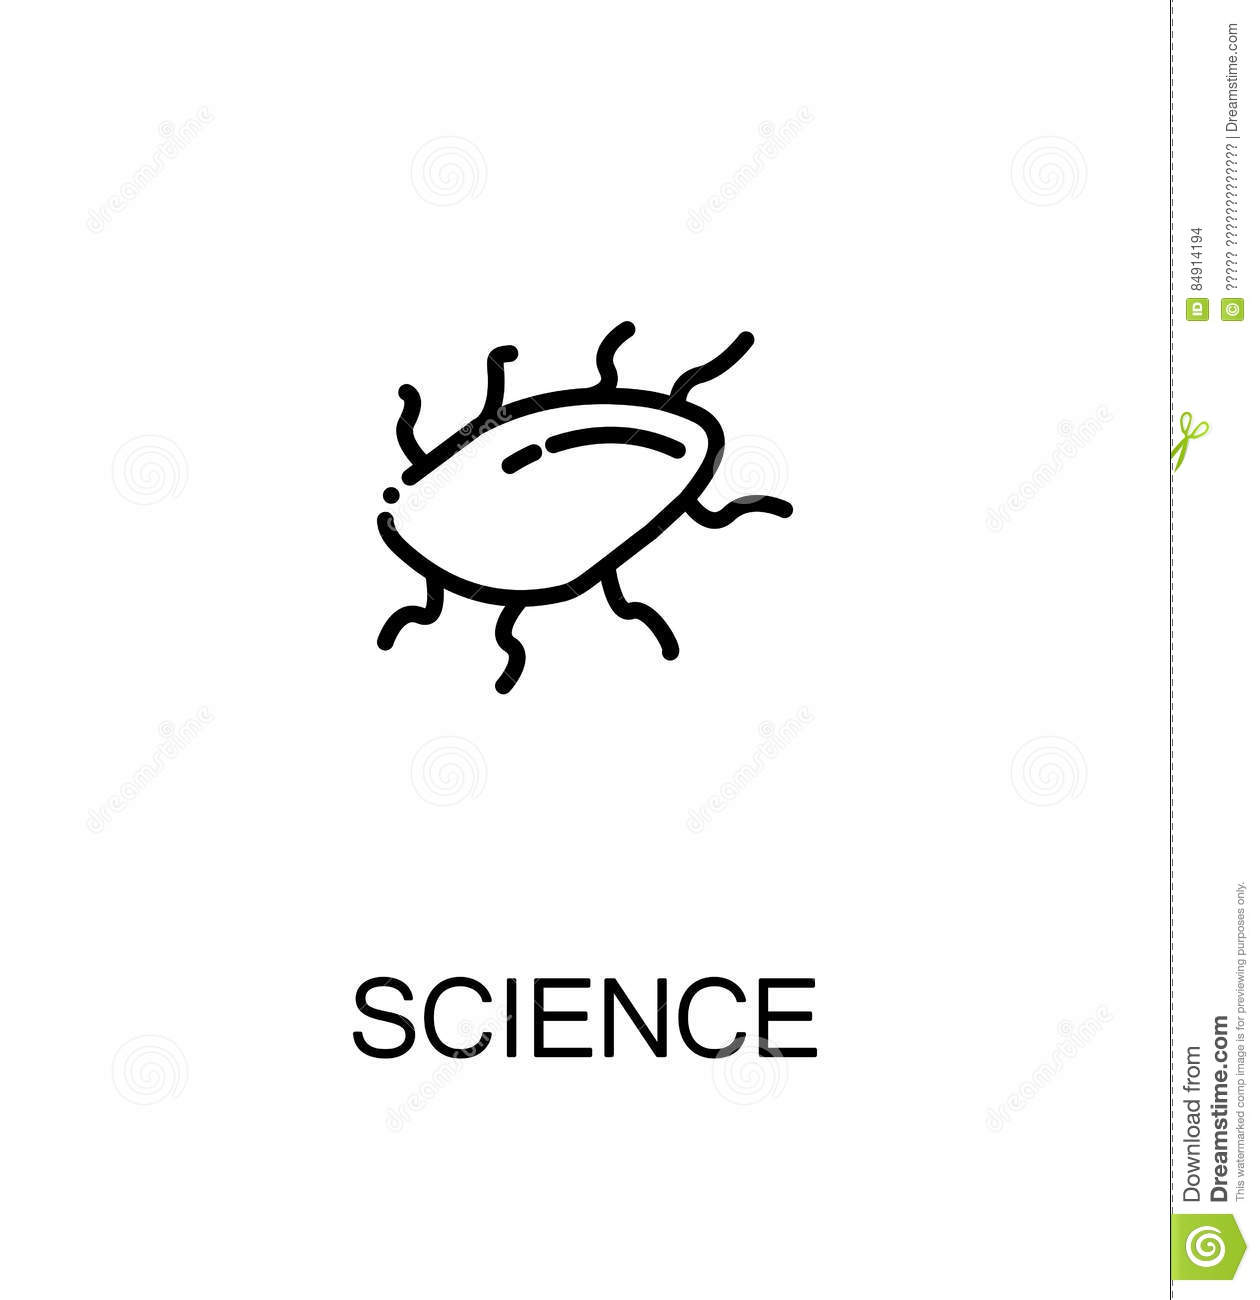 Microorganism Amoeba In Sketch Style Structure Vector Illustration